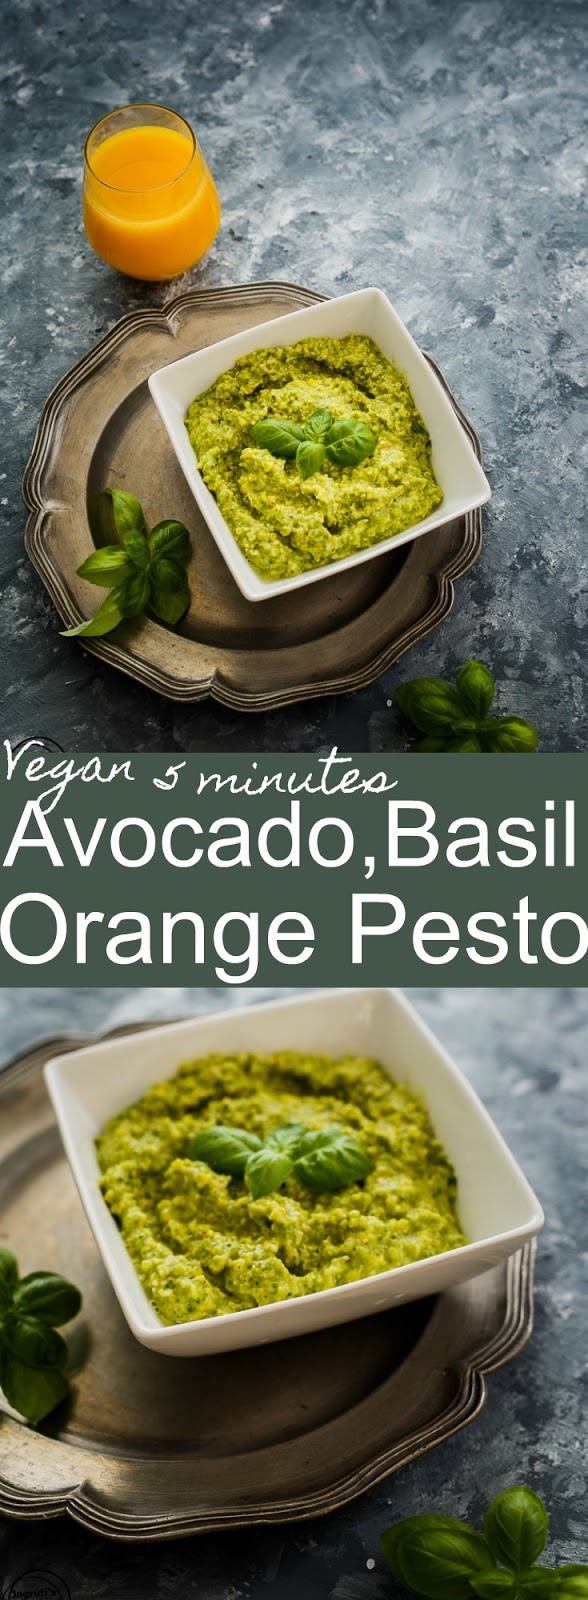 Healthy and easy to prepare Pesto-this recipe uses avocado, basil and orange juice to make the most delicious and vegan pesto!